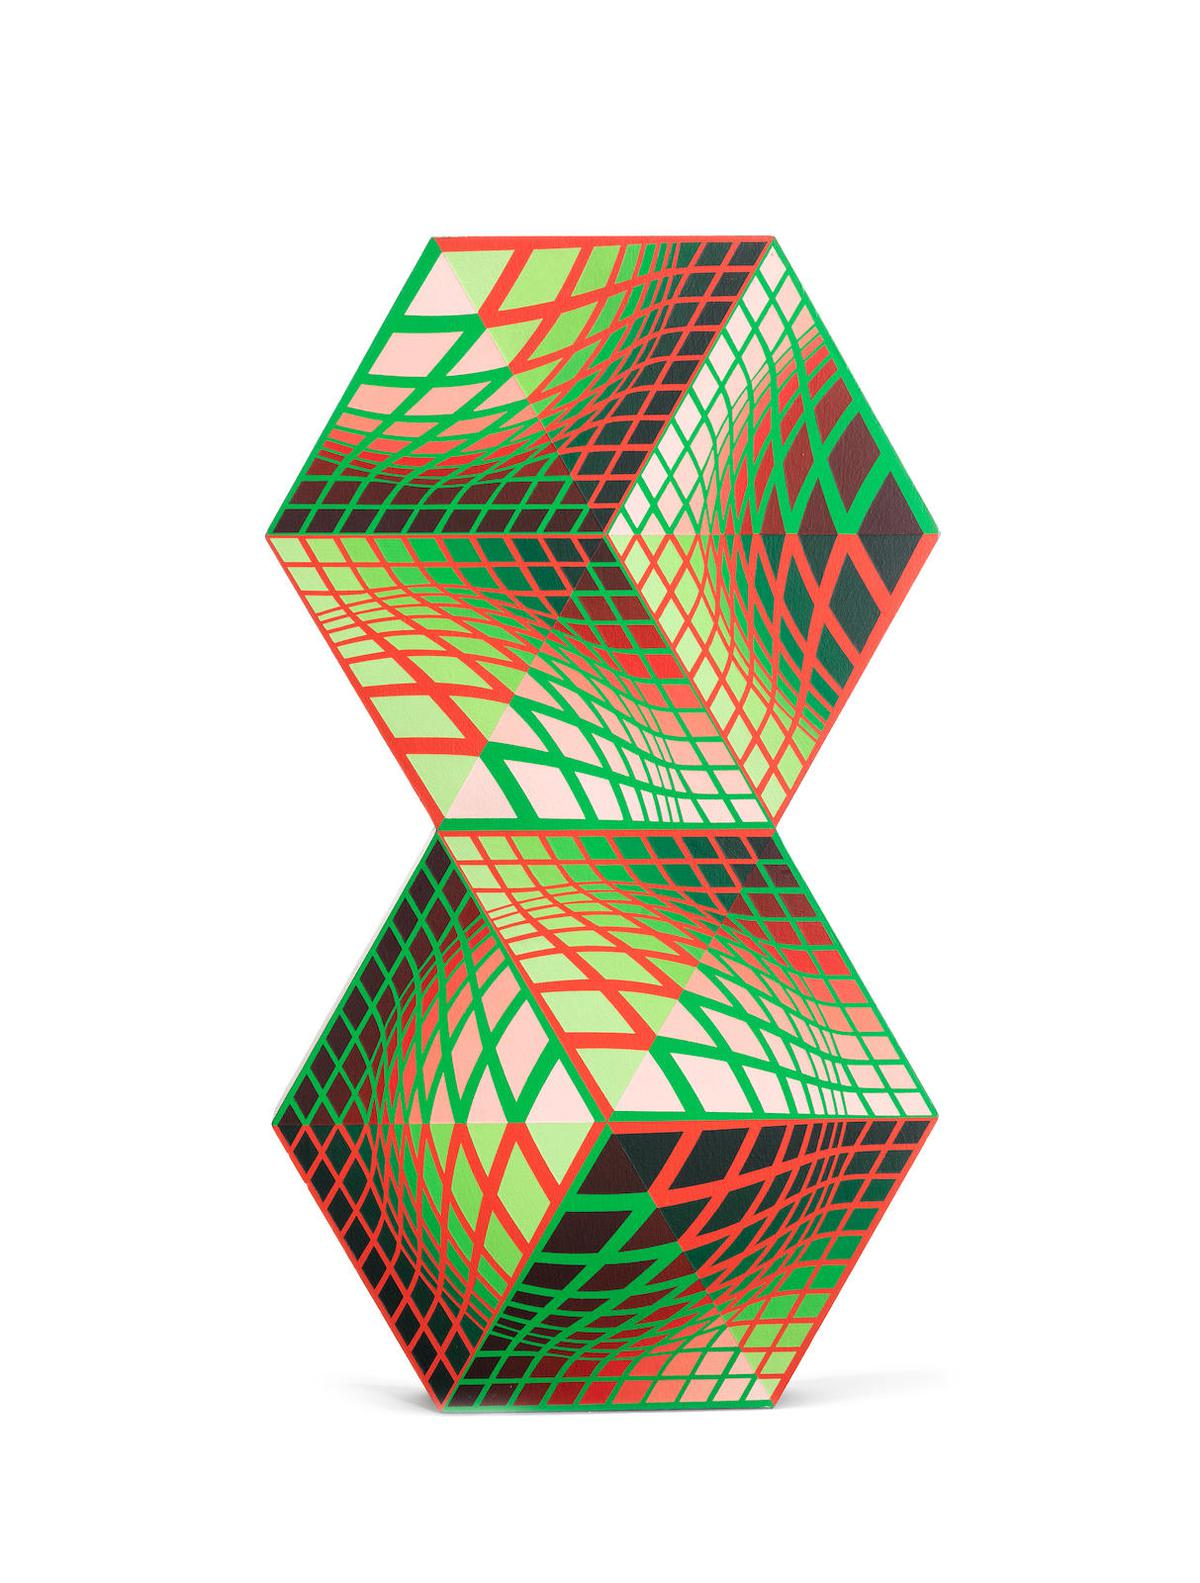 Victor Vasarely-Kettes-1988